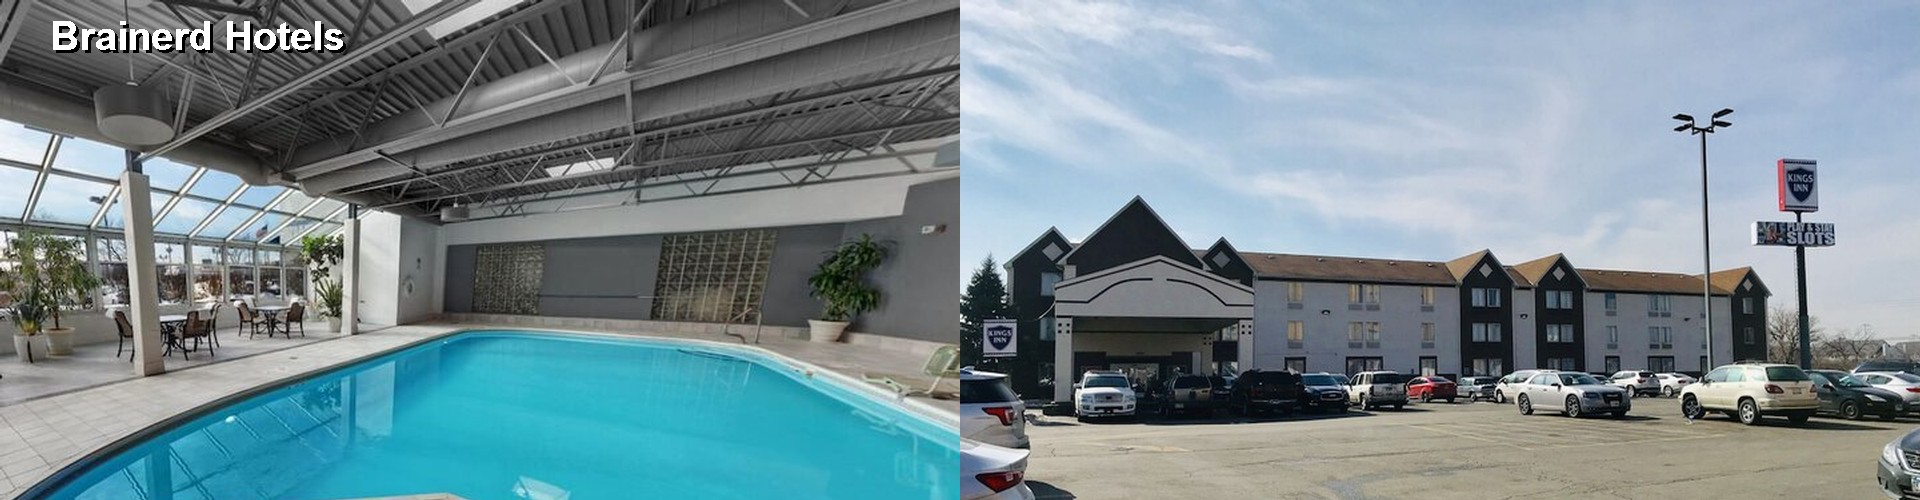 5 Best Hotels near Brainerd